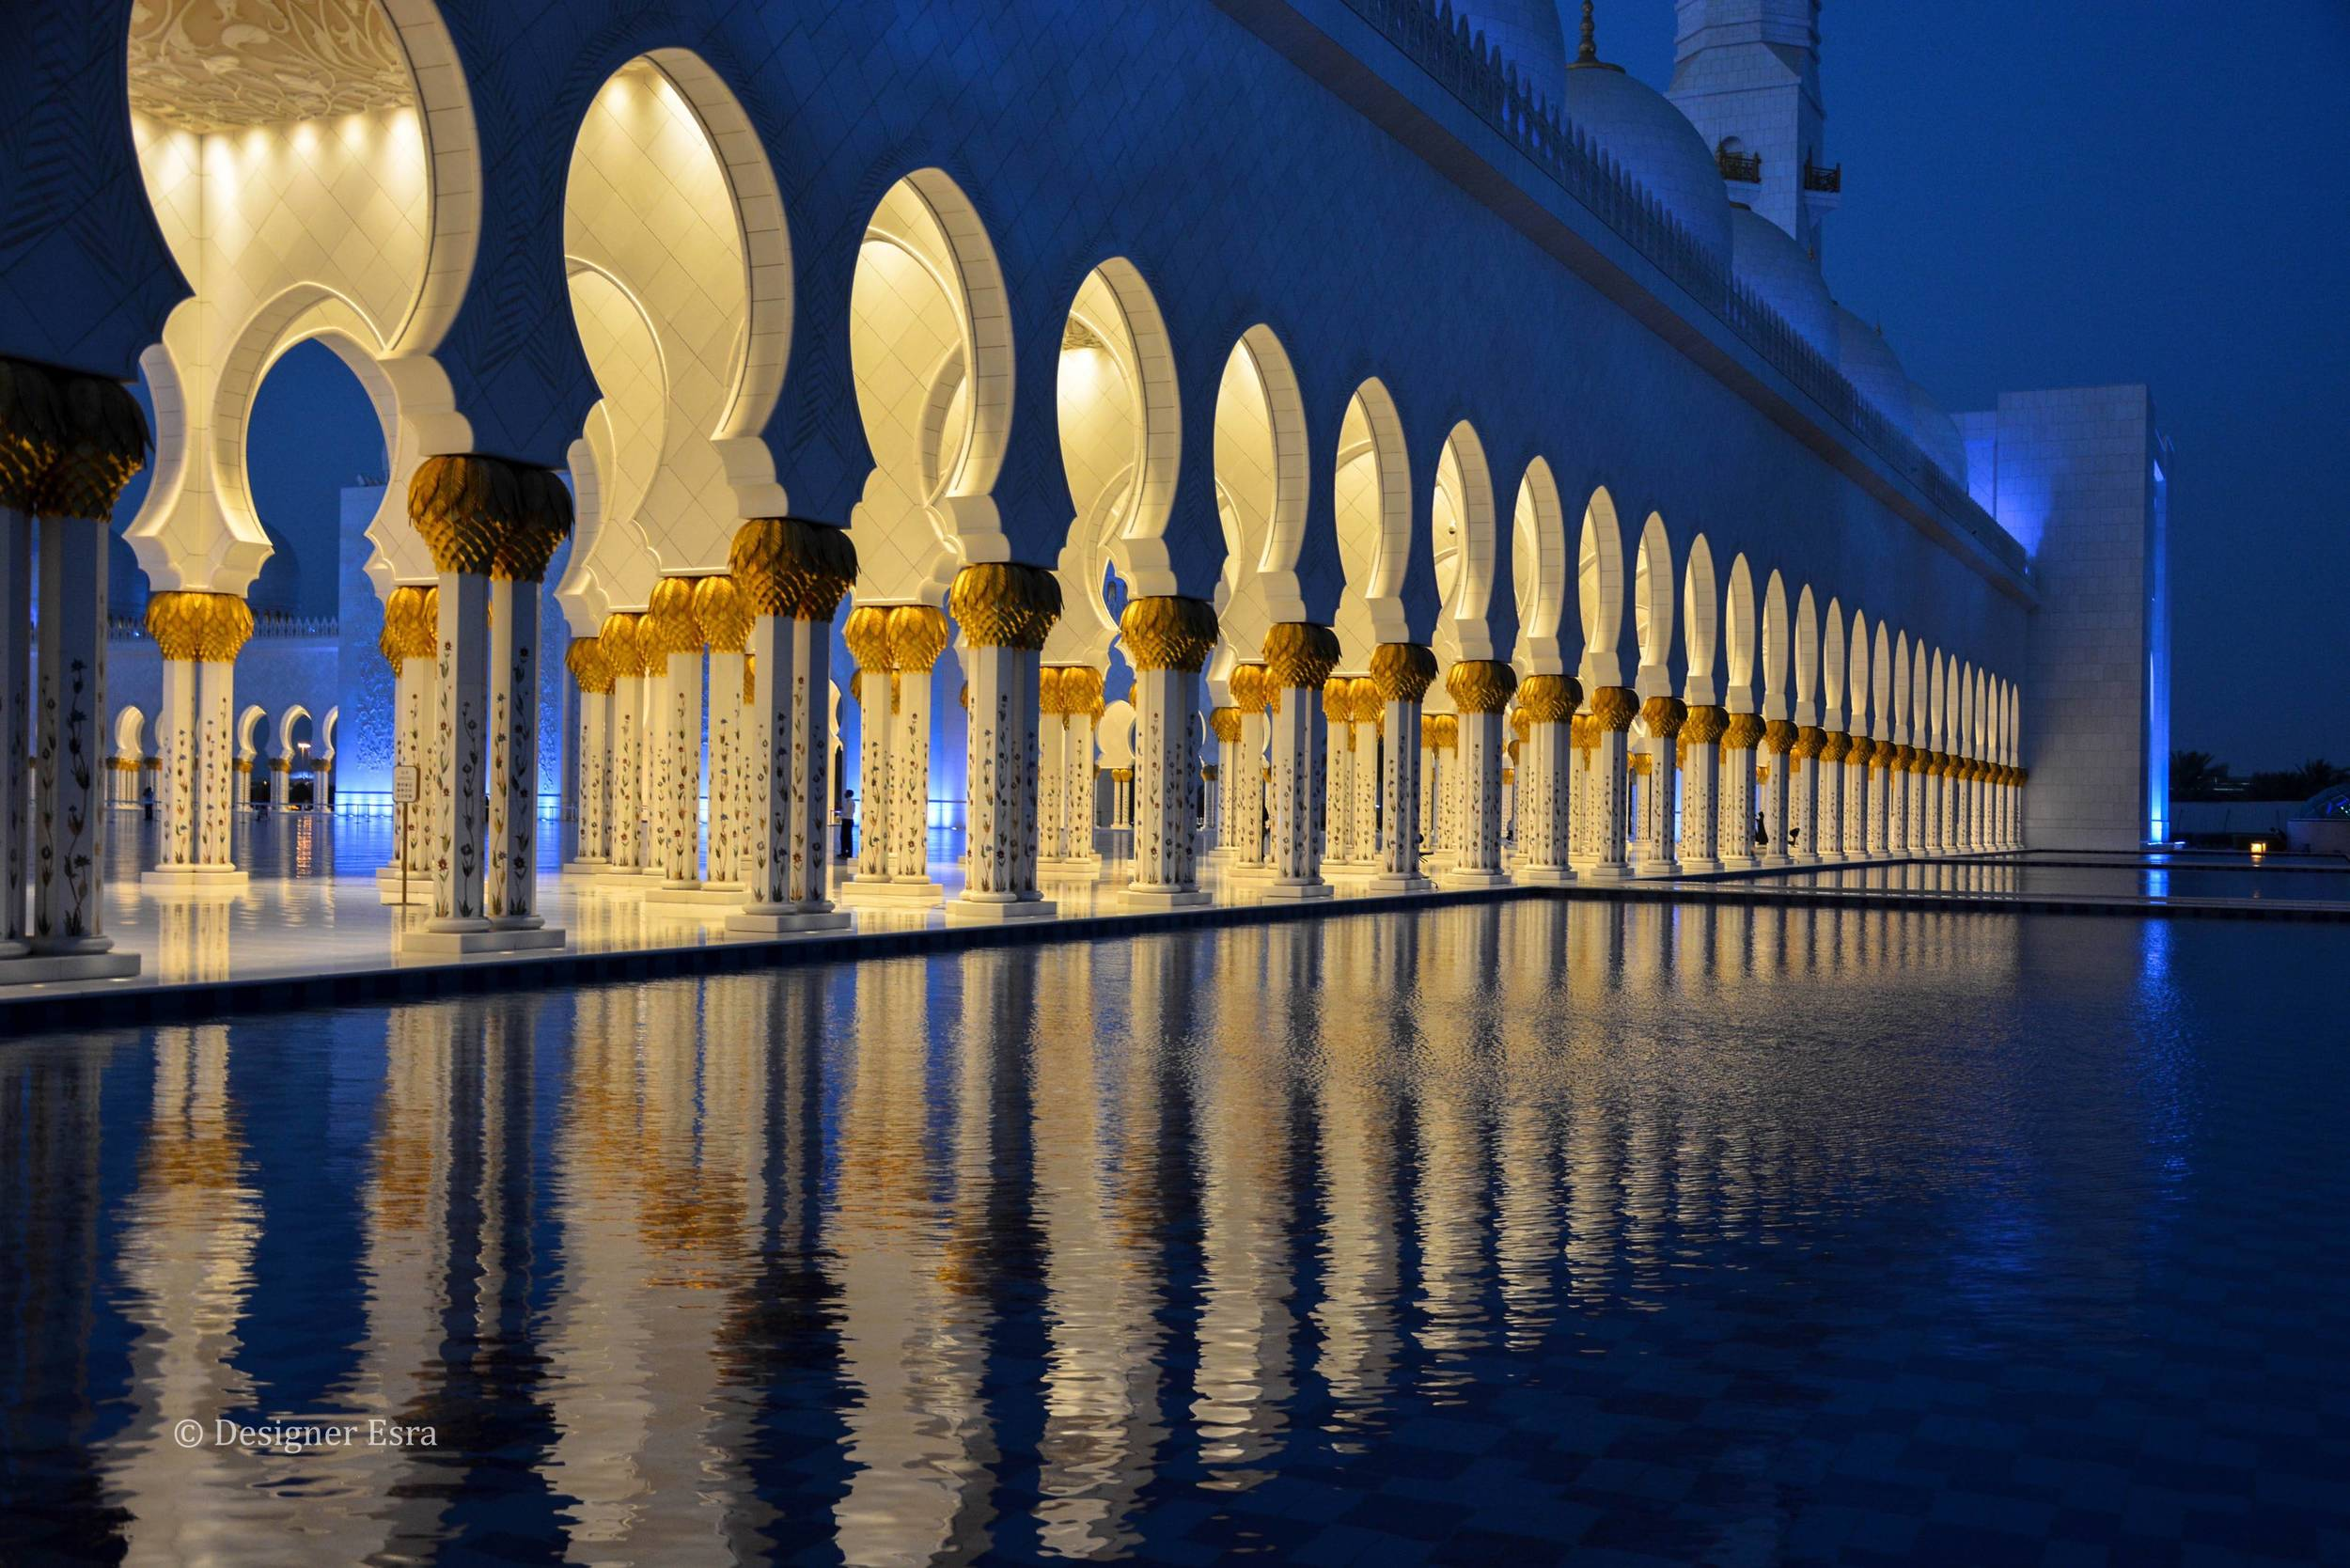 Sheikh Zayed Grand Mosque's columns reflected in the water